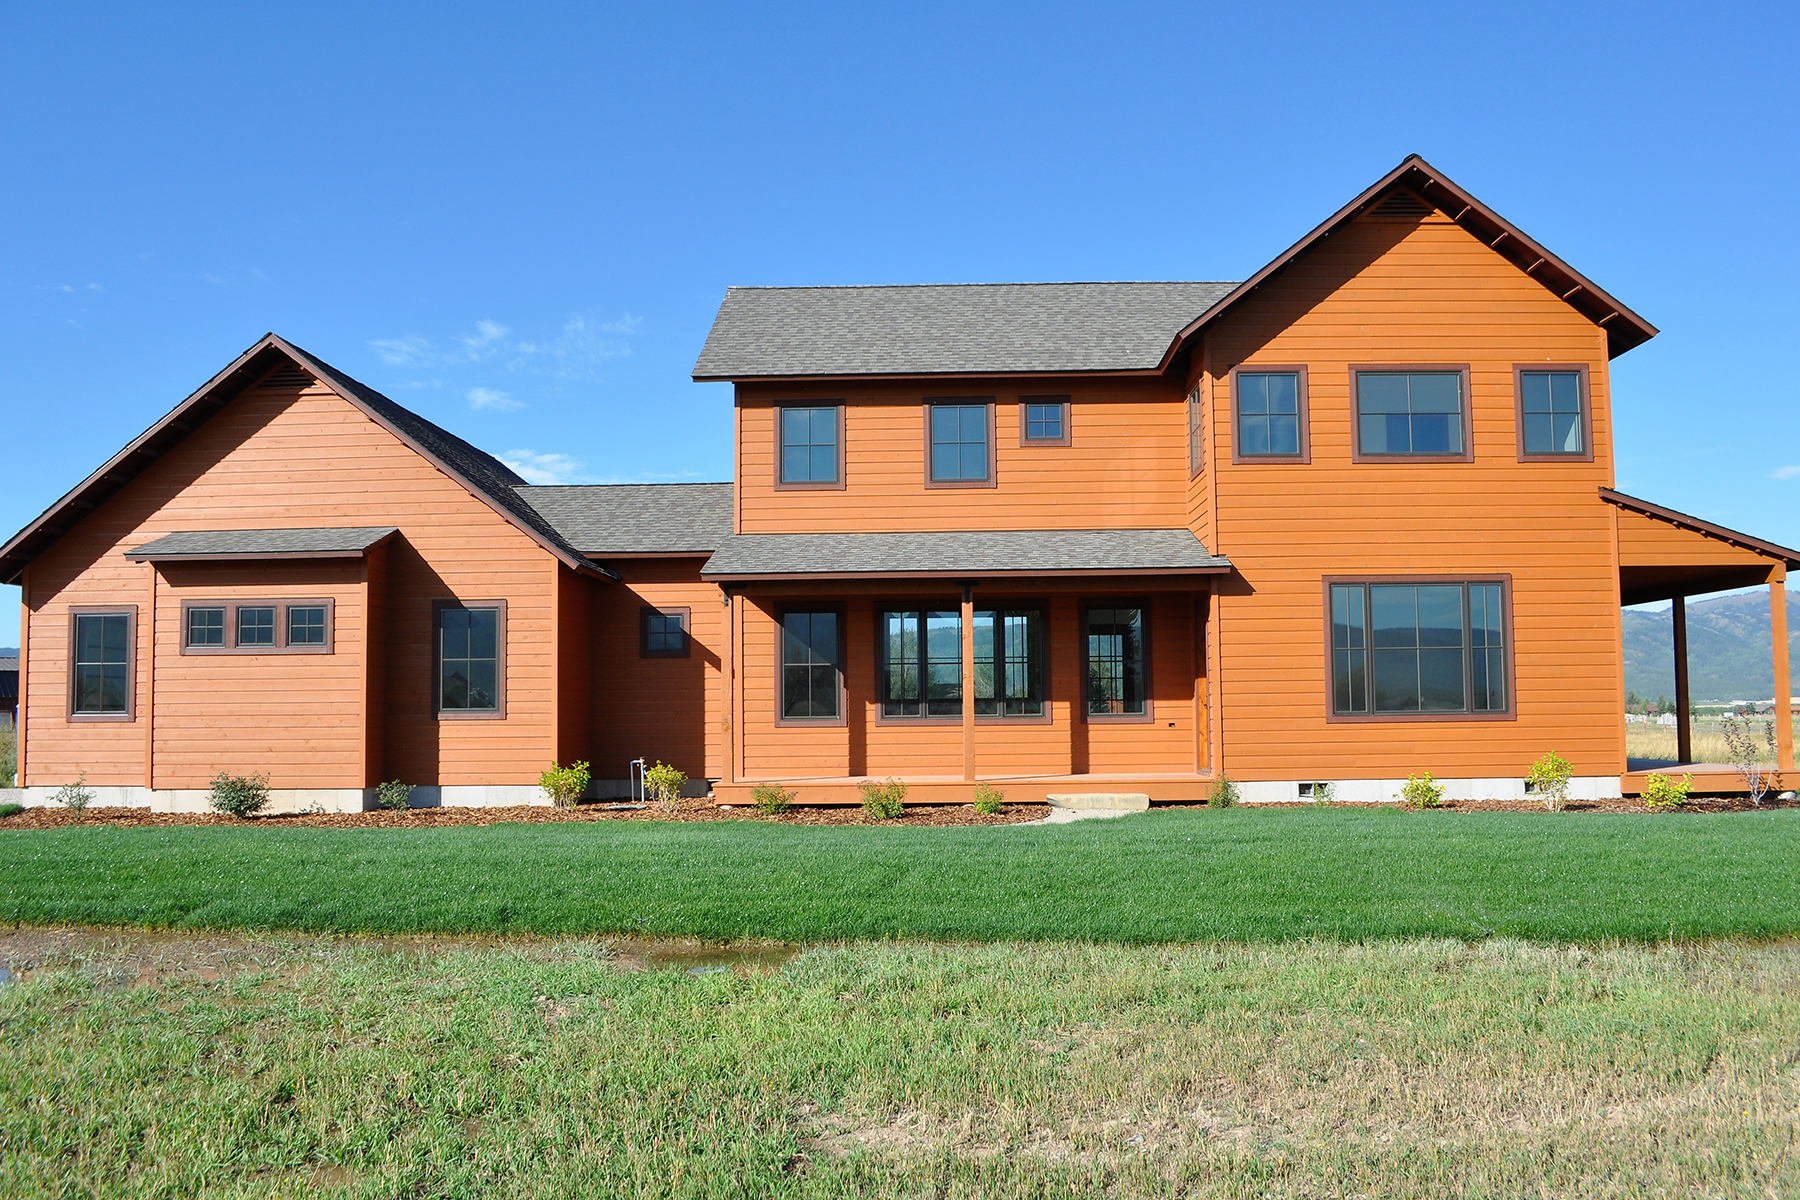 Single Family Homes for Sale at New Custom Home Aspen Lake in Victor 7264 Lakeside Rd Victor, Idaho 83455 United States